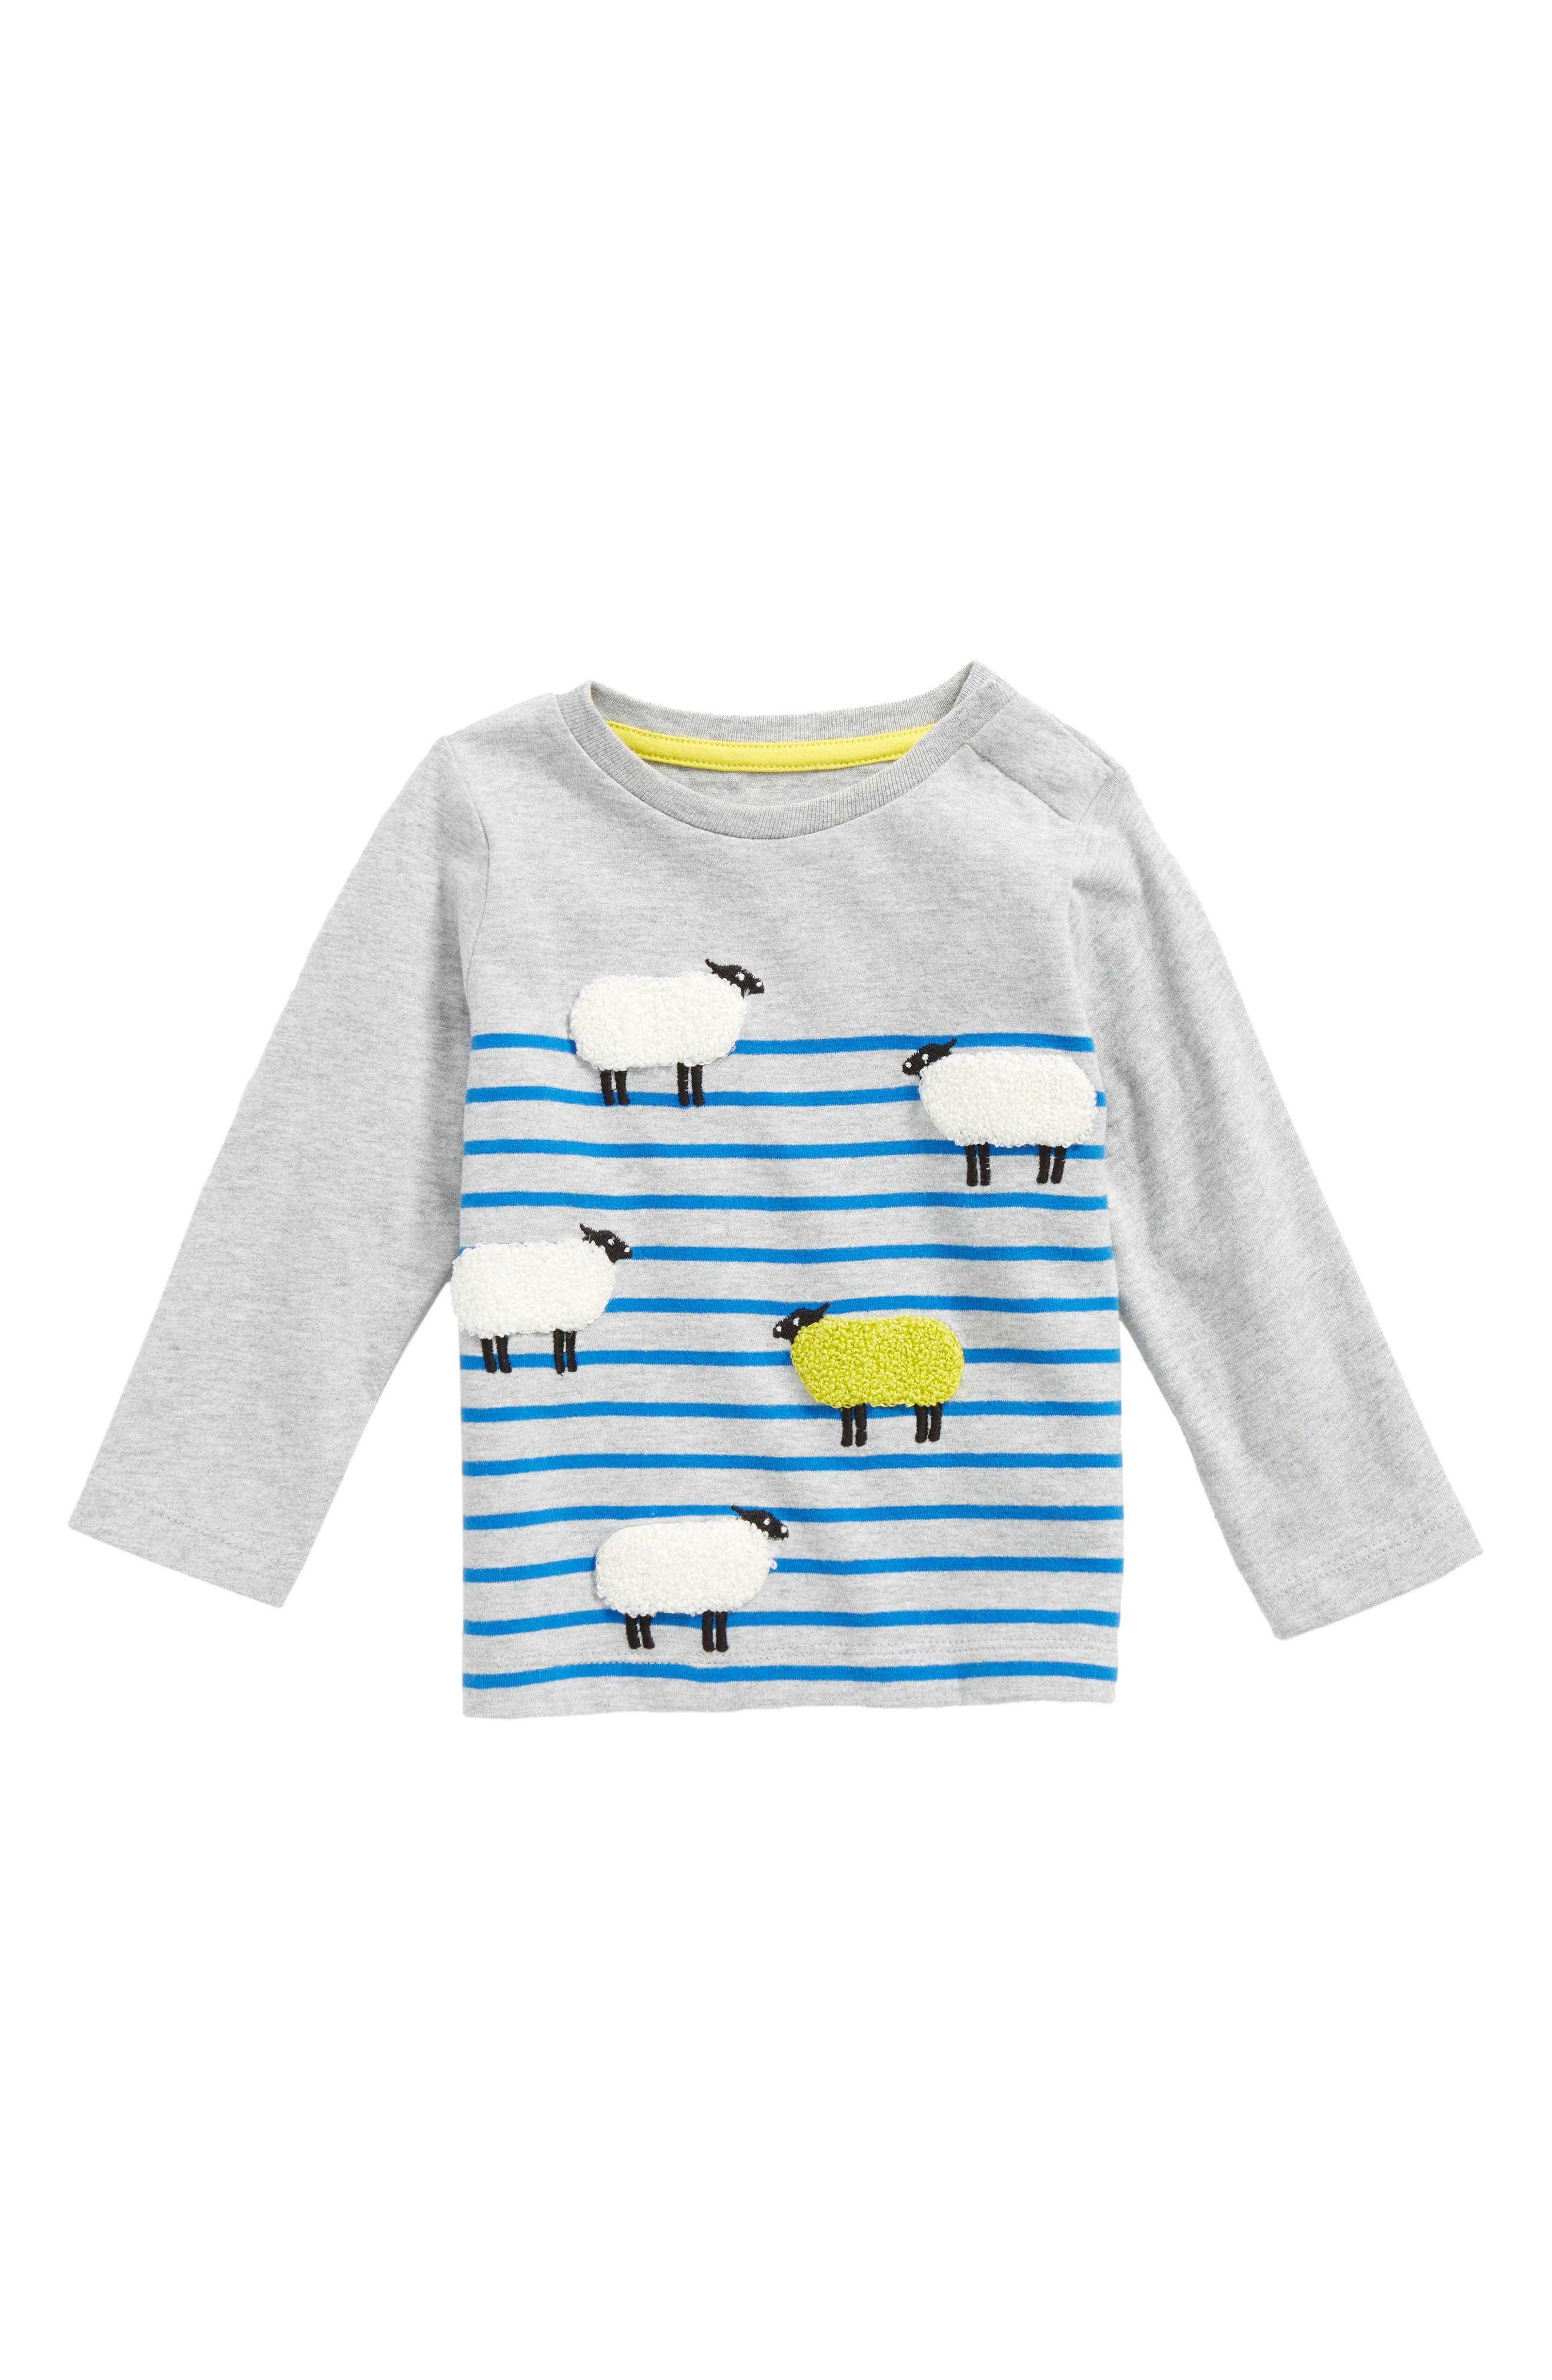 Main Image - Mini Boden Odd One Out T-Shirt (Baby Boys & Toddler Boys)